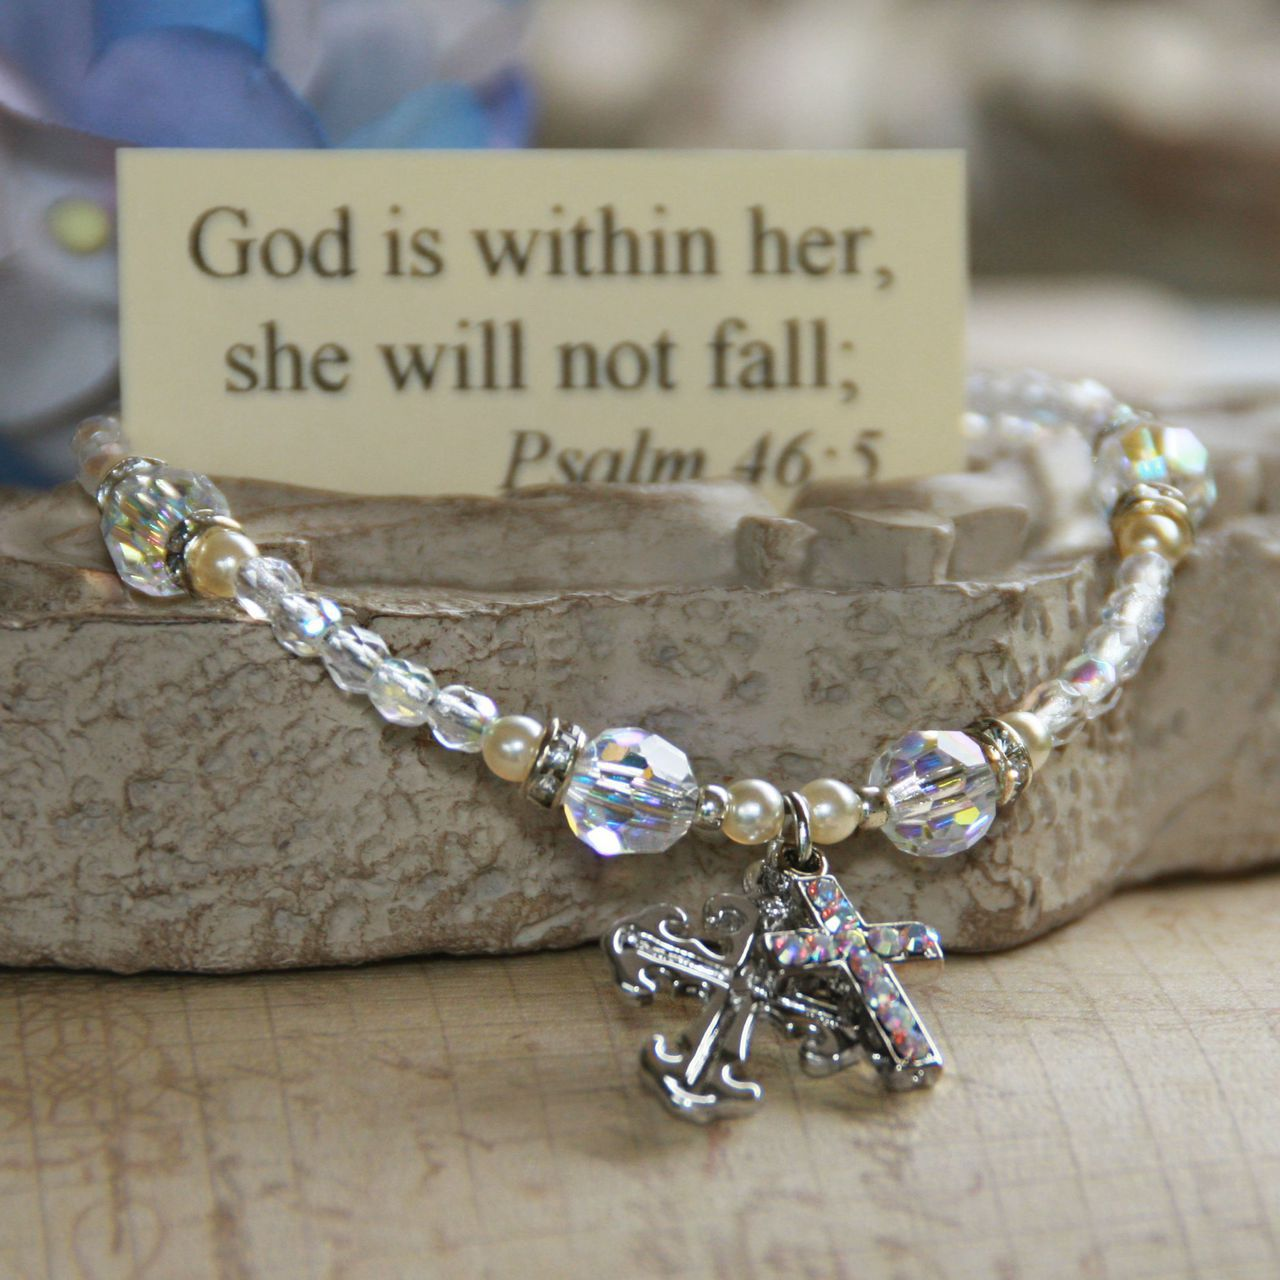 God is within her Cross Charm Bracelet bracelet, charm bracelet, message bracelet, bead bracelet, cross, in-373